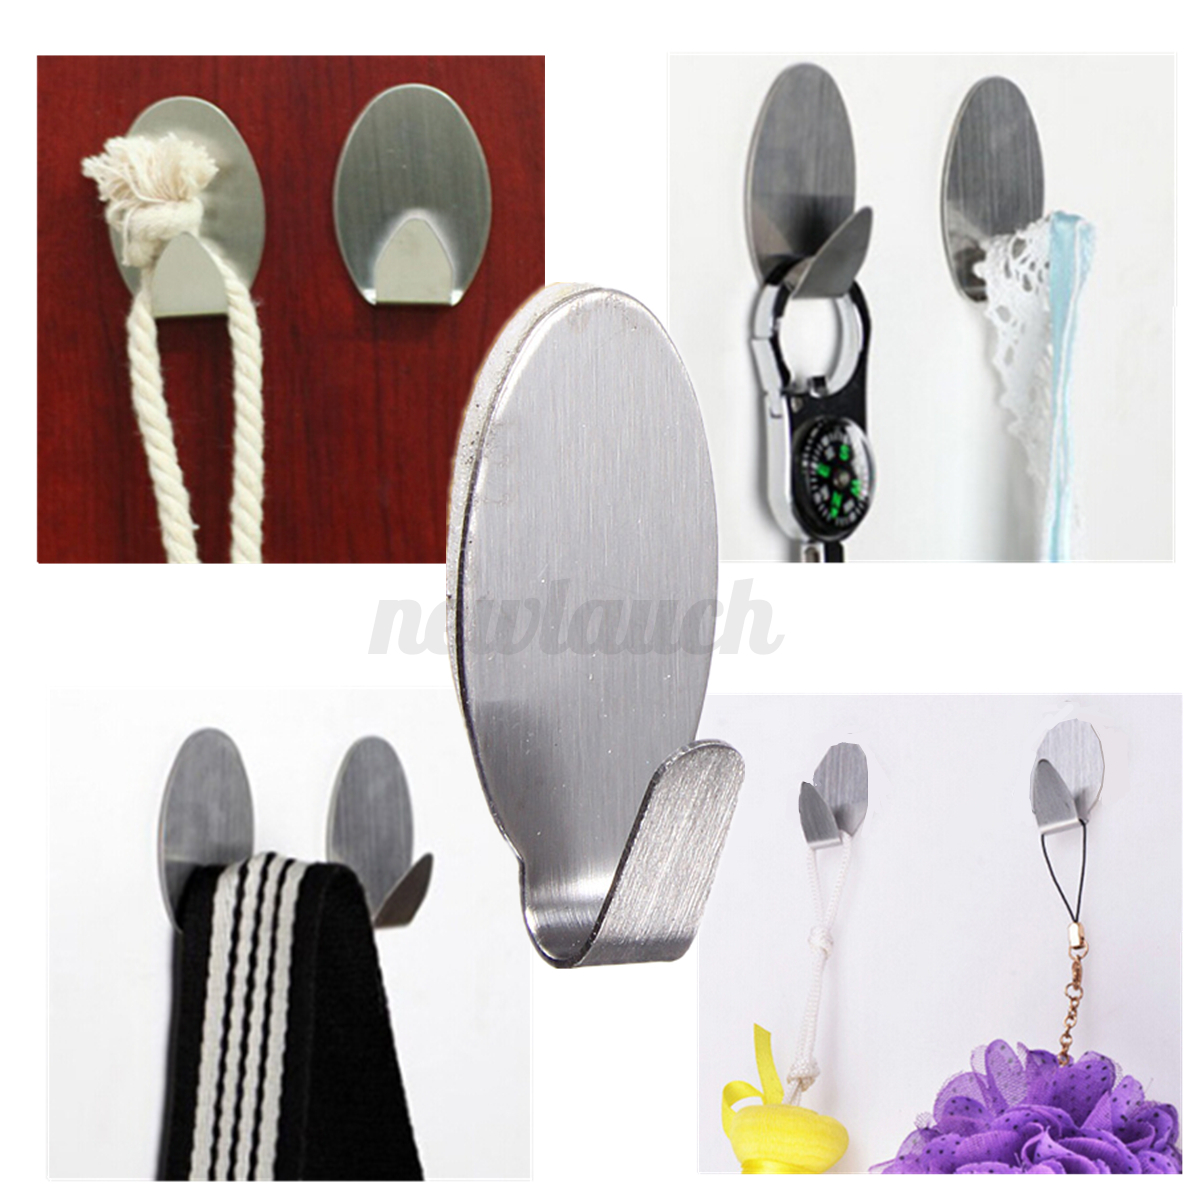 60-X-Adhesive-Stainless-Steel-Cabinet-Towel-Racks-Wall-Hook-for-Kitchen-Bathroom